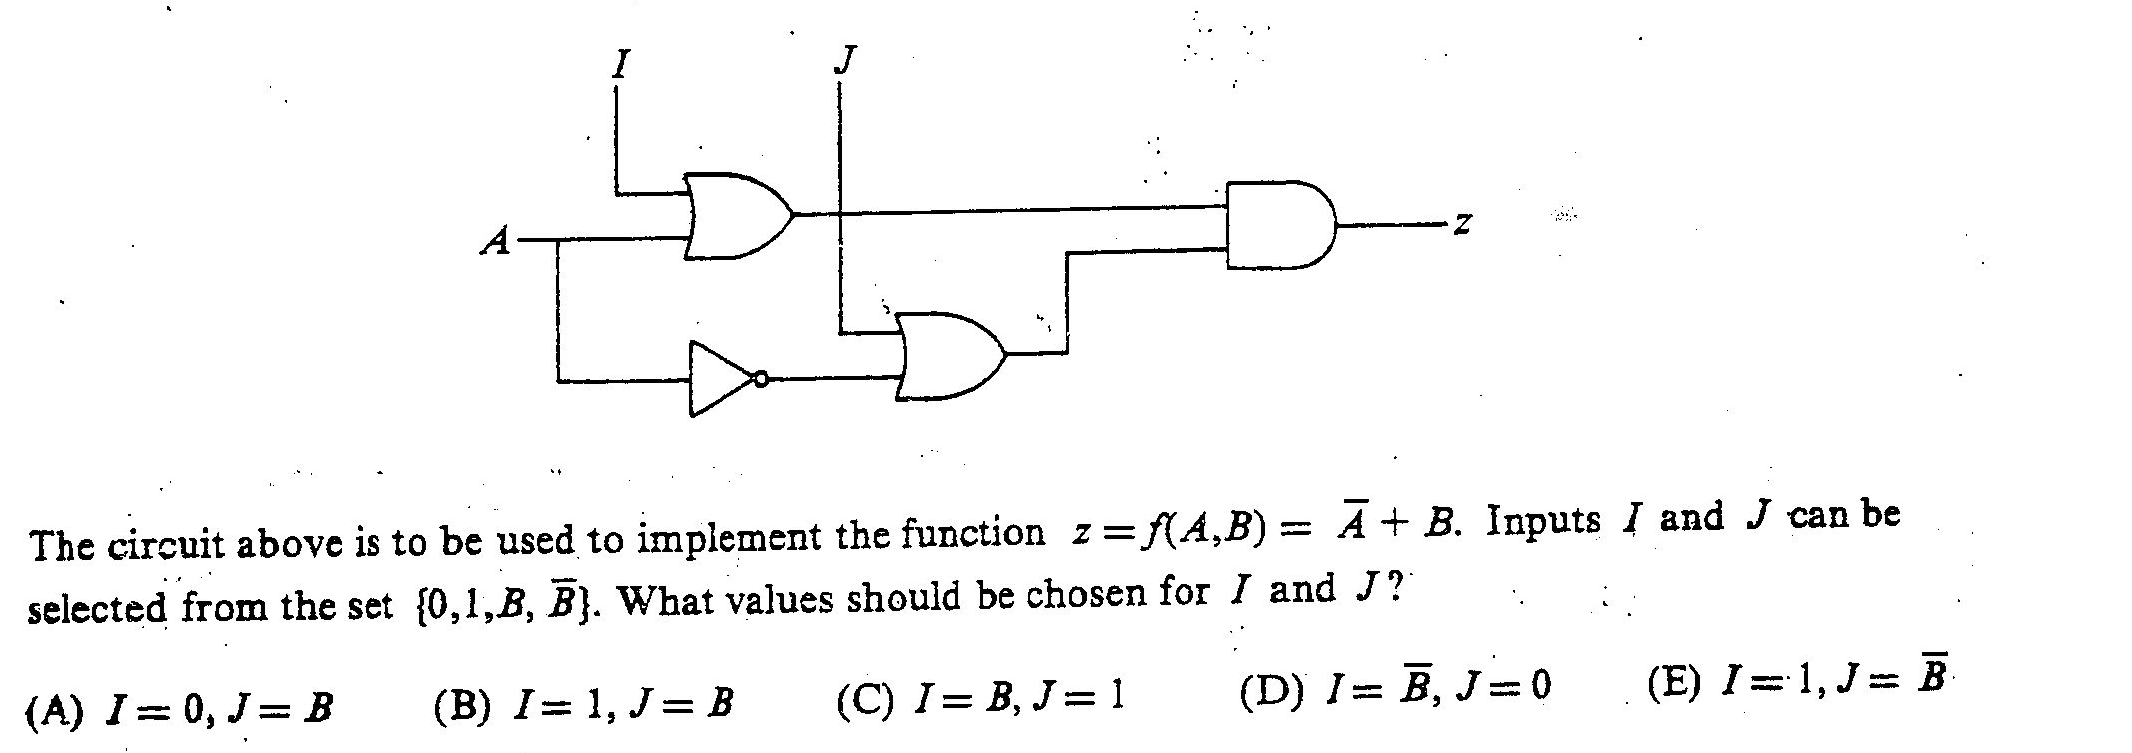 Csc Comprehensive Exam 2010 Proprofs Quiz Class Test 4 Integrated Circuits 27